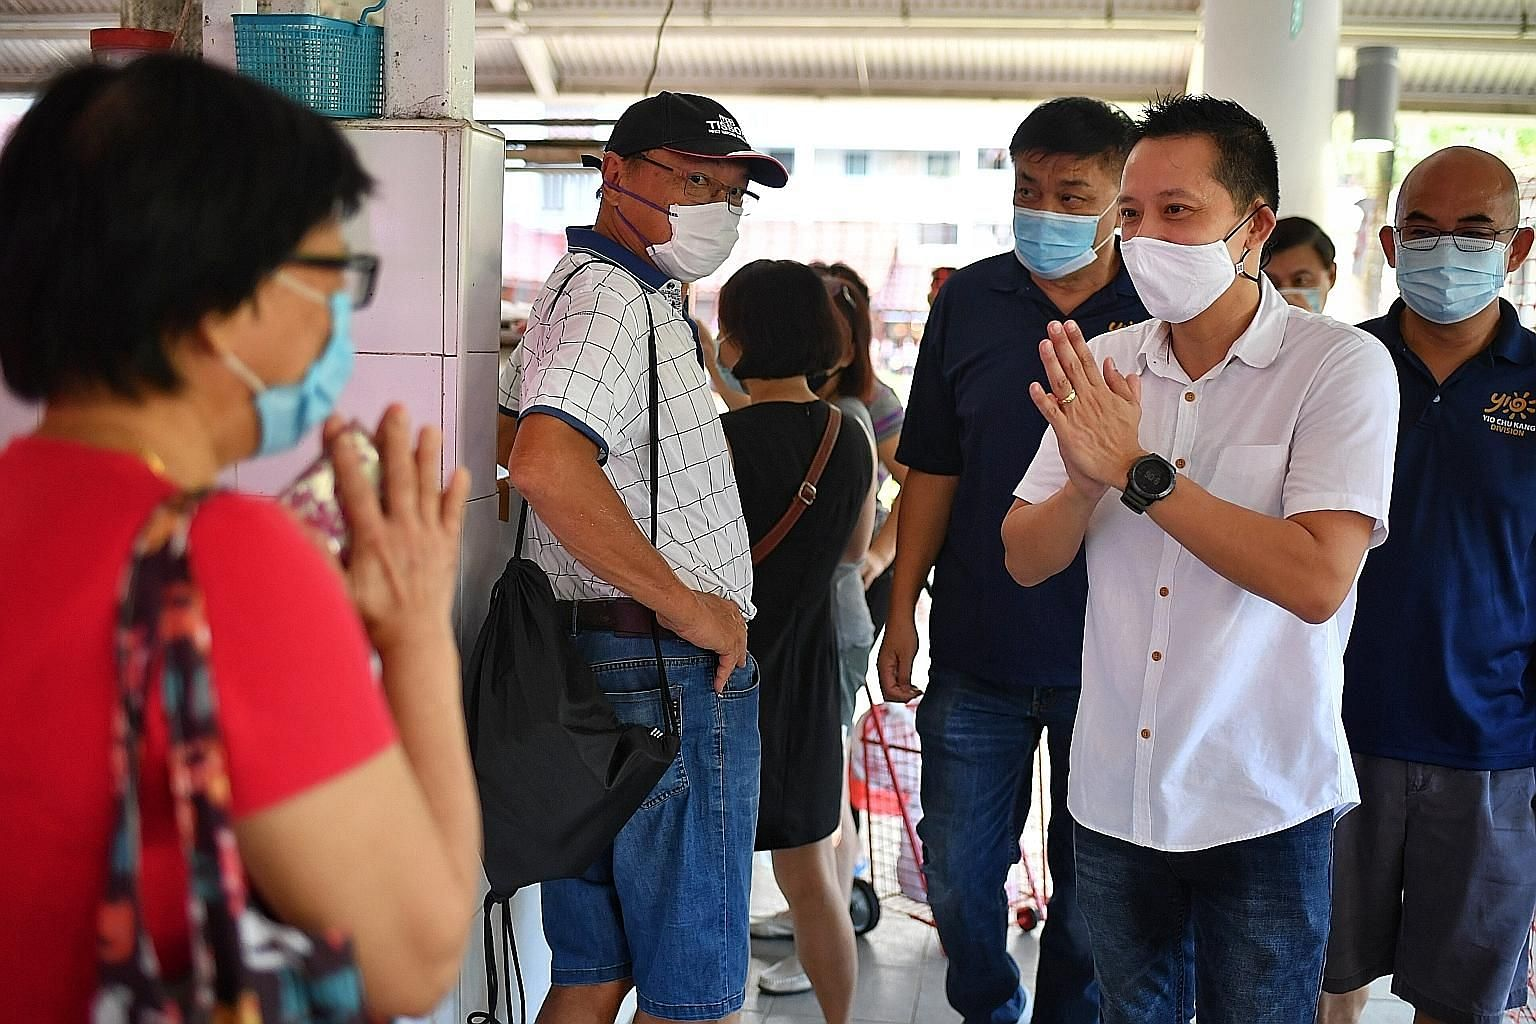 Above left: The People's Action Party's Mr Yip Hon Weng, the newly elected MP for Yio Chu Kang SMC, greeting residents at the Ang Mo Kio 628 Market yesterday morning. Mr Yip, who said ageing issues remain a priority, will continue to engage residents